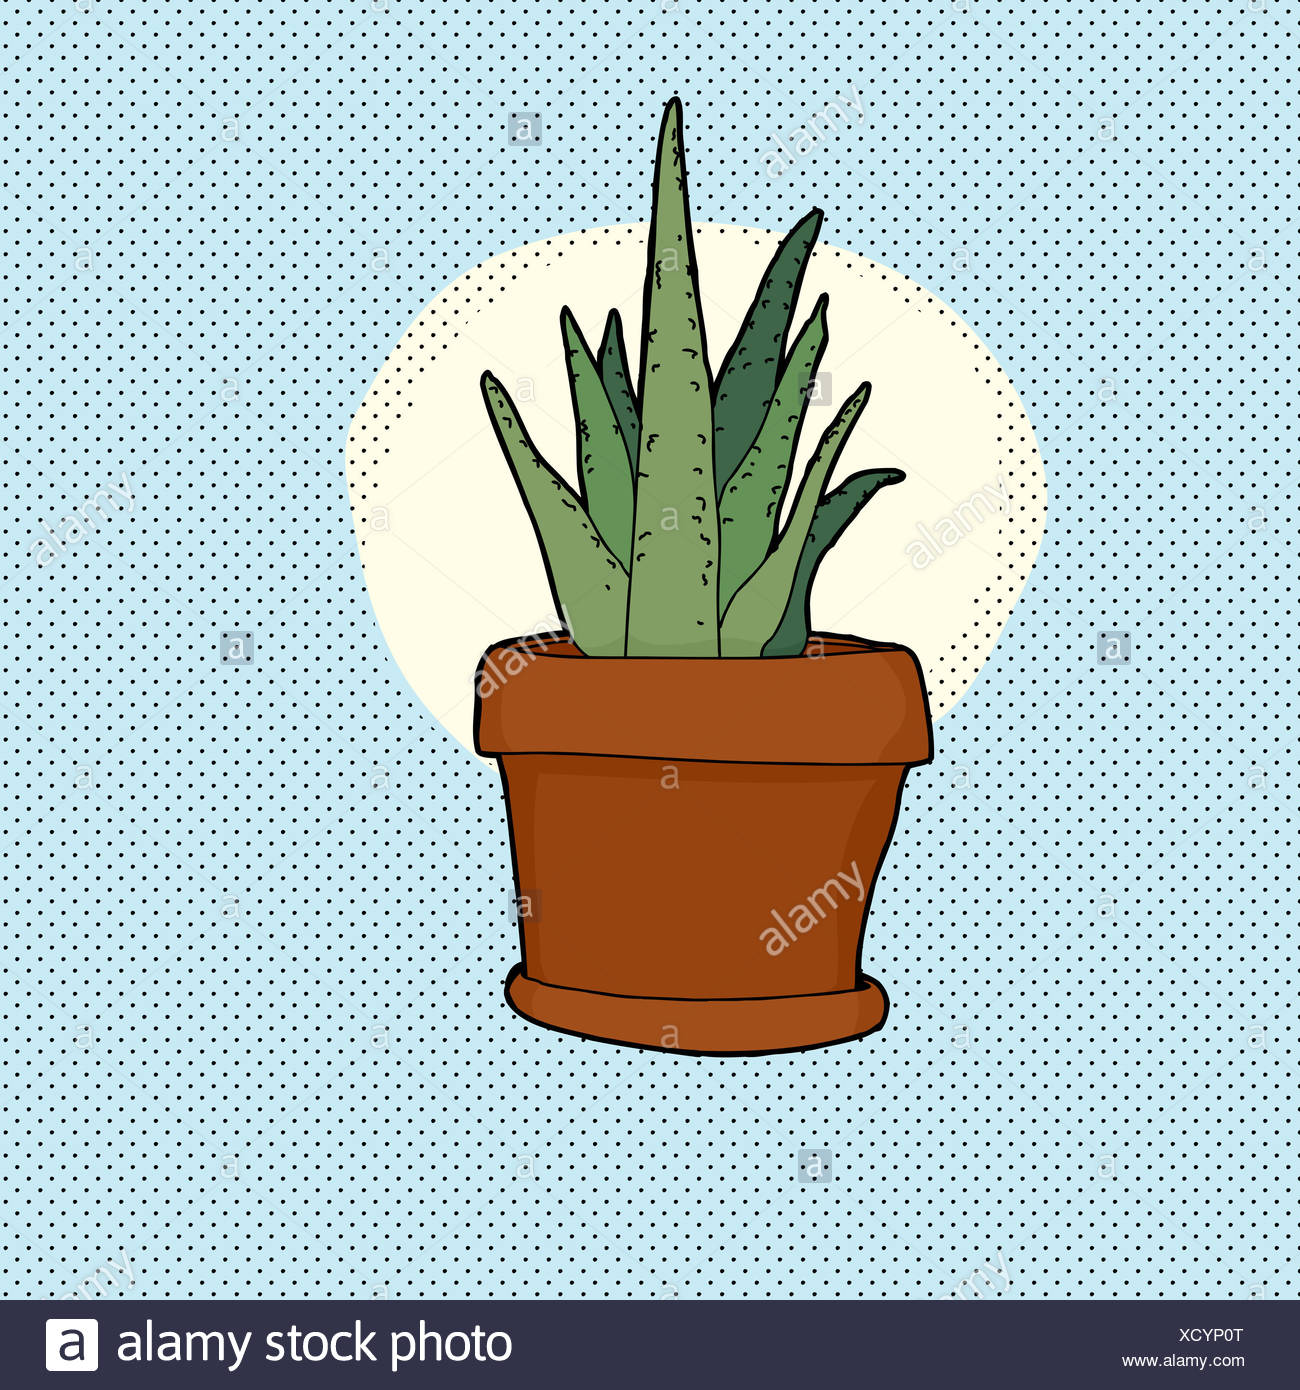 Aloe Vera Plant Hand Drawn High Resolution Stock Photography And Images Alamy